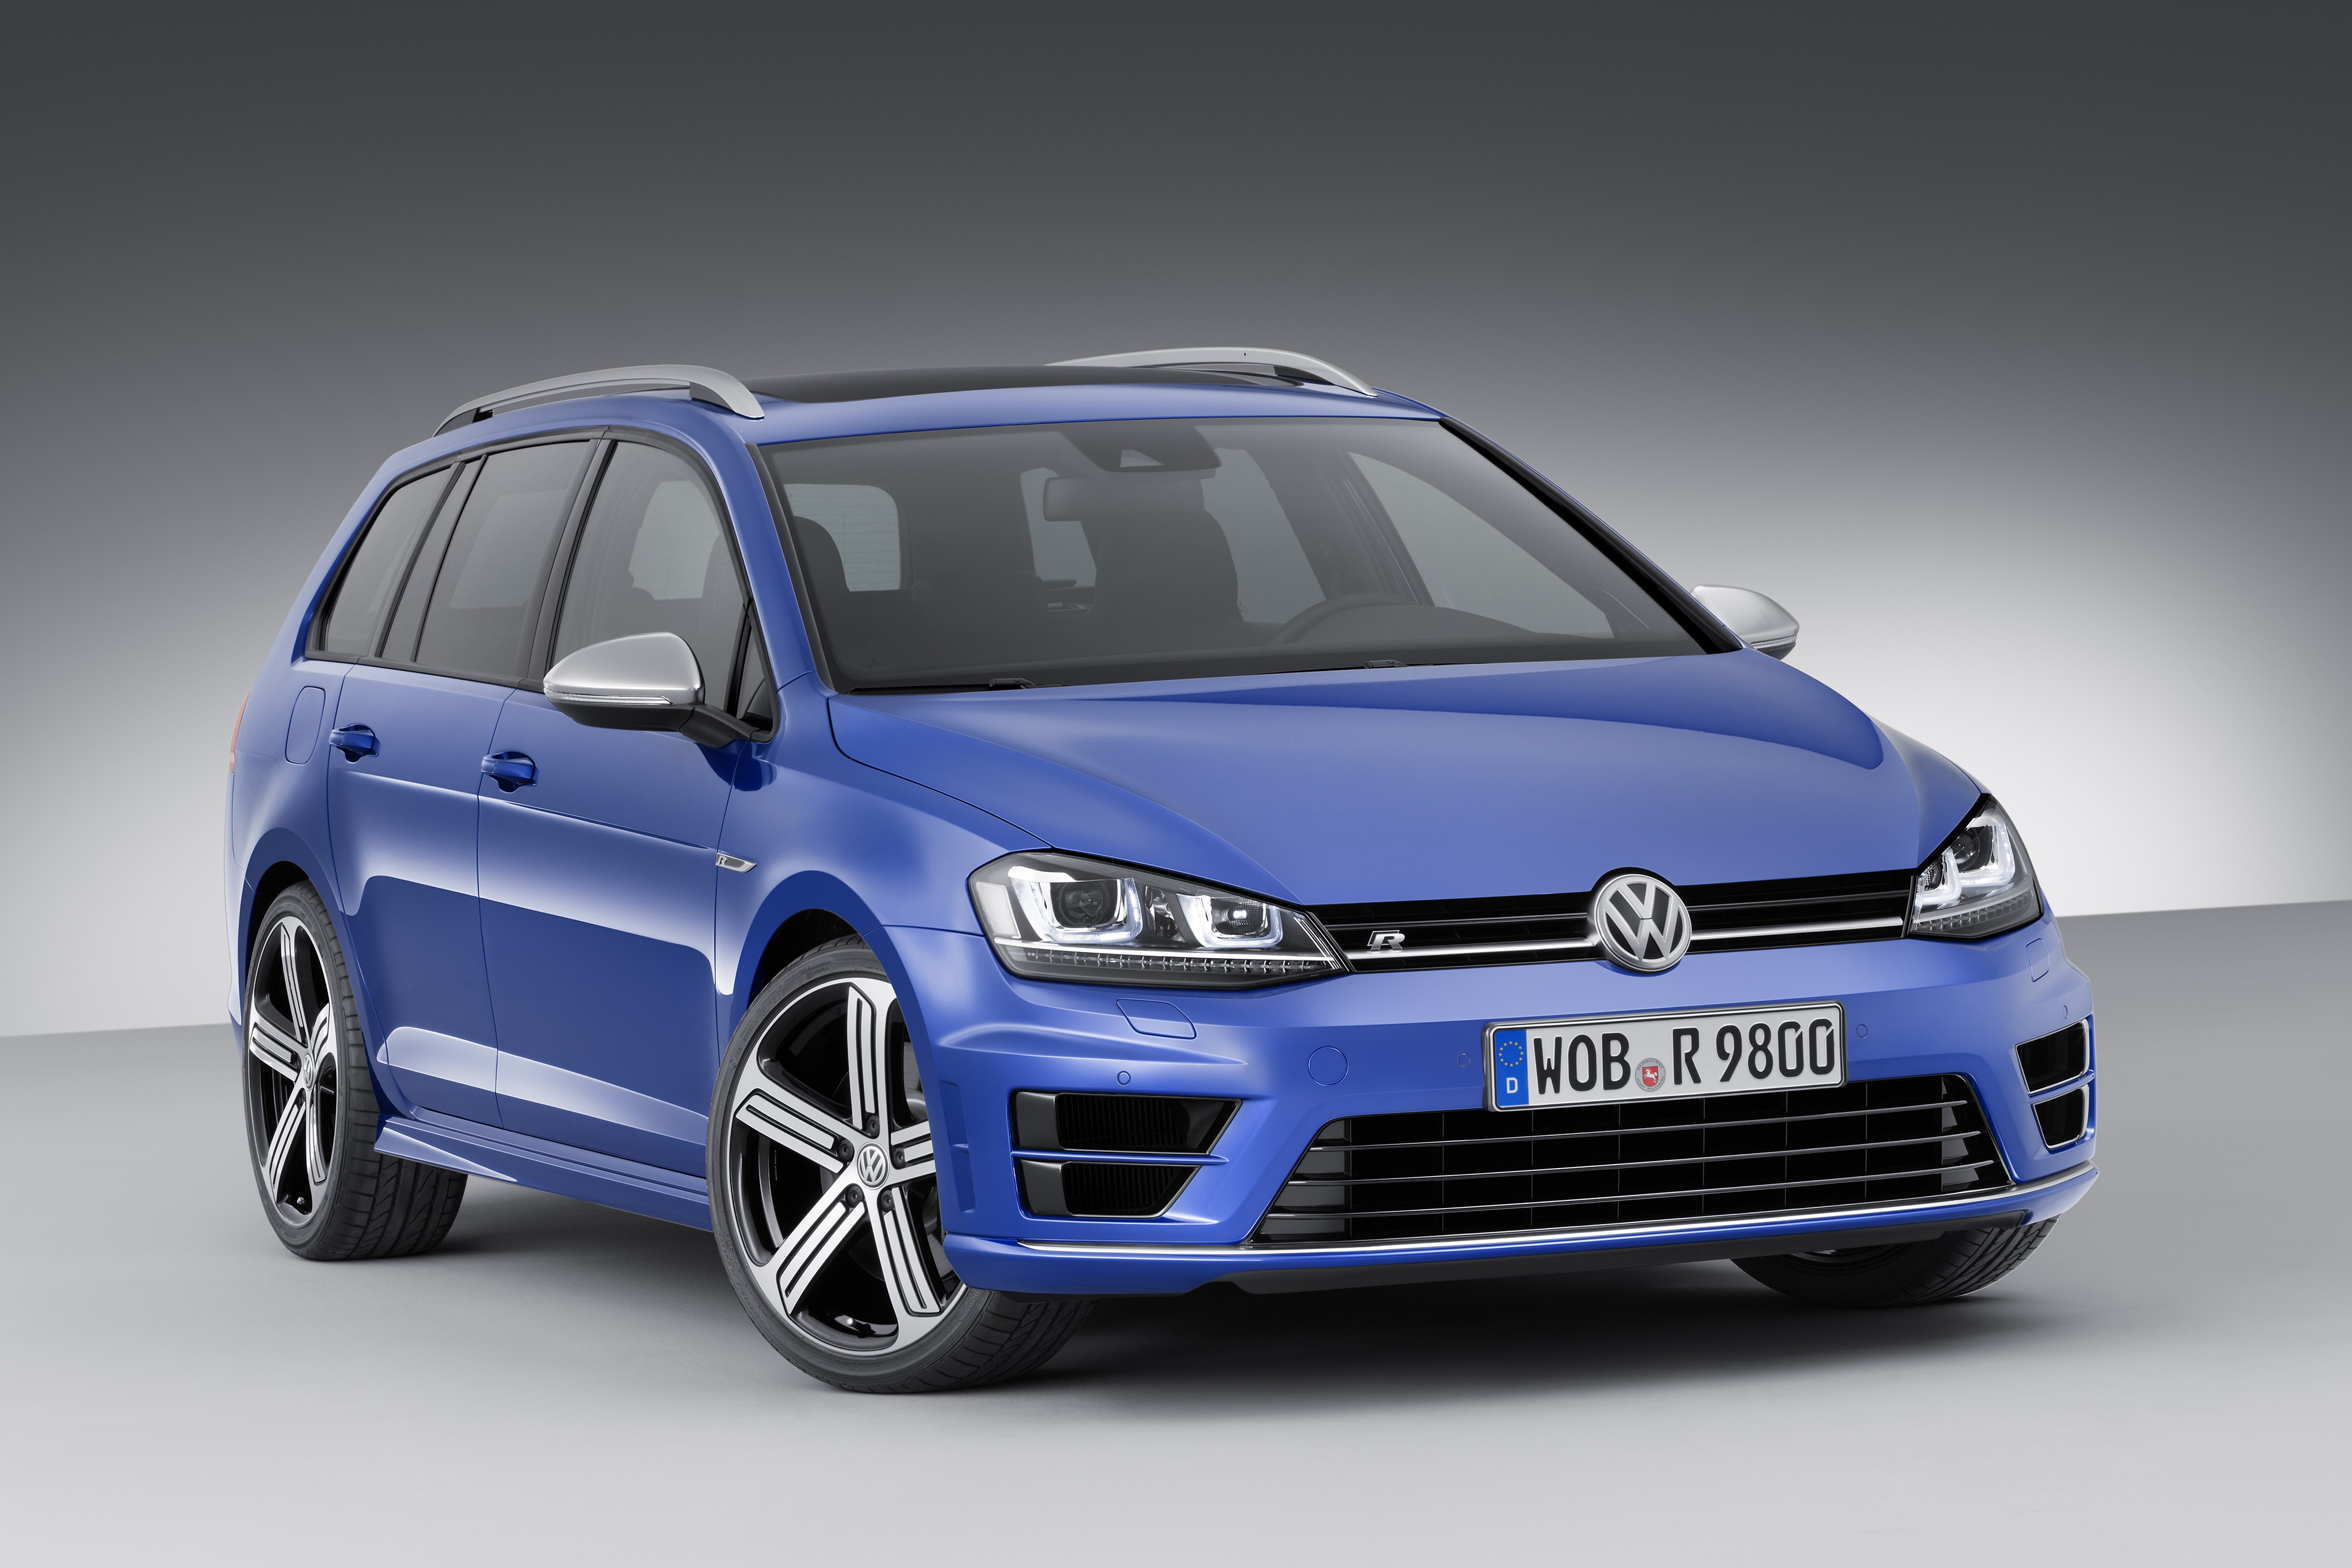 volkswagen golf r variant priced at 43 000 goes on sale with standard dsg autoevolution. Black Bedroom Furniture Sets. Home Design Ideas